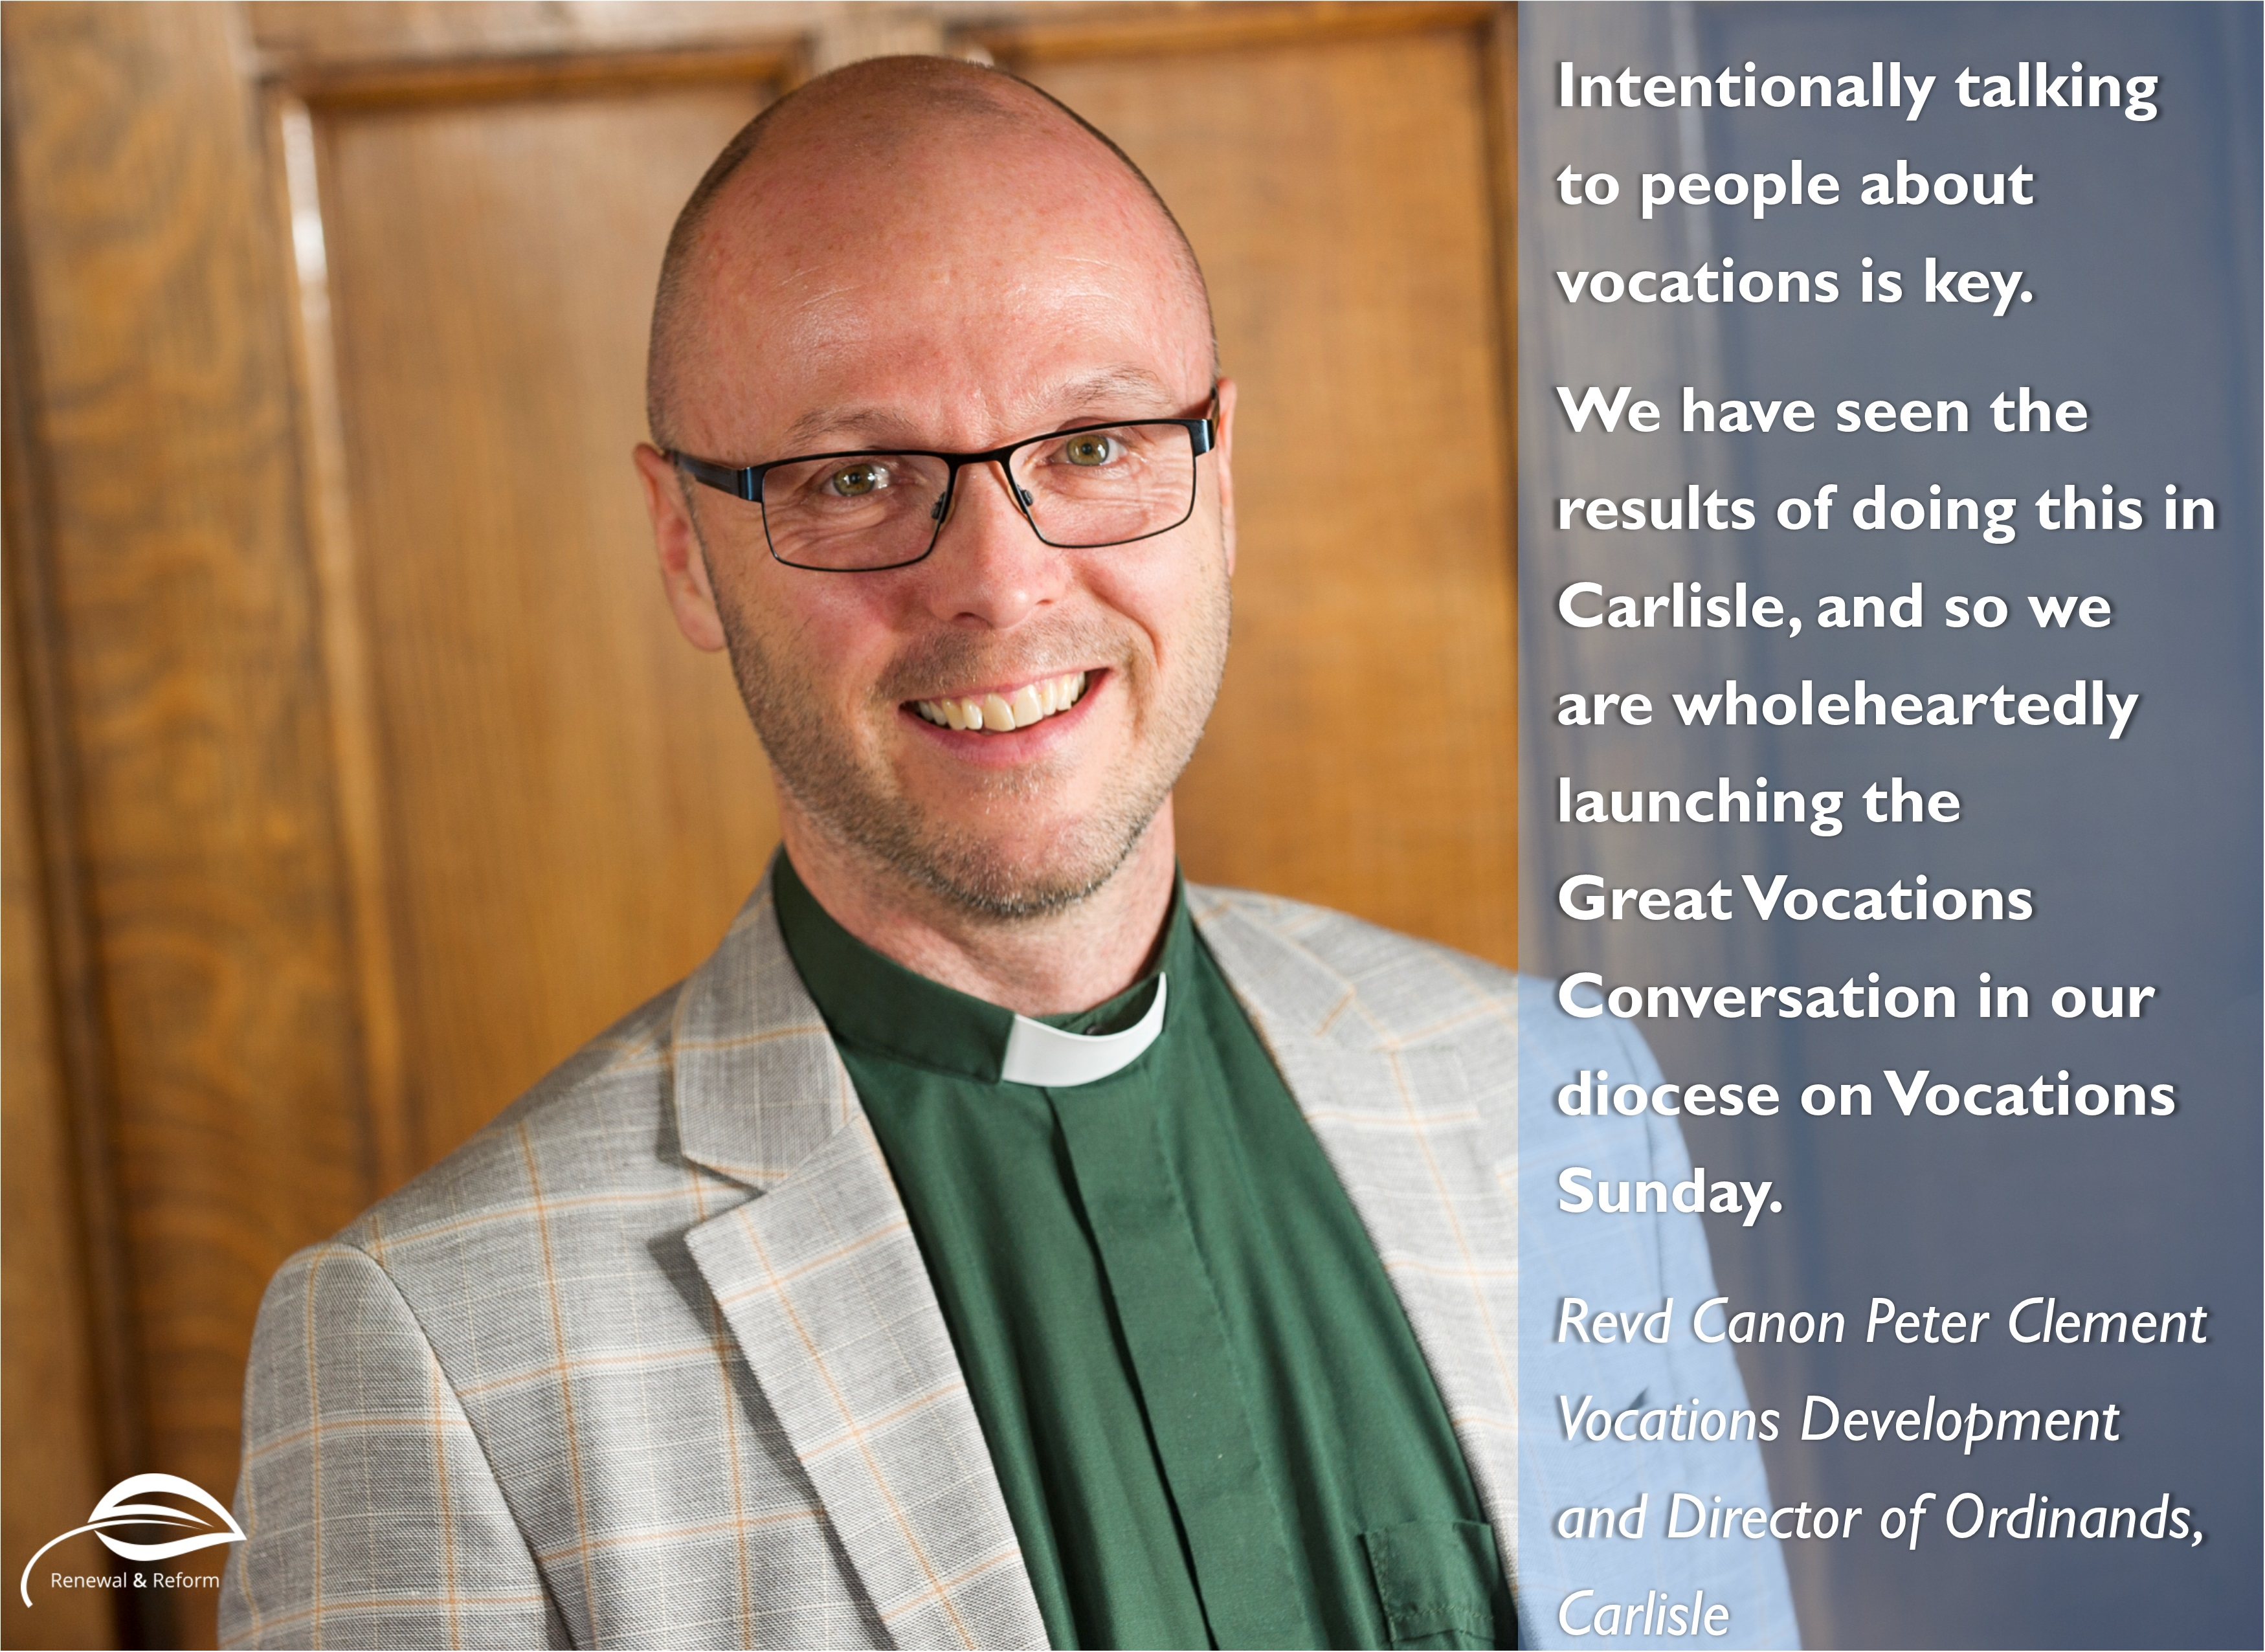 Peter Clement. Carlisle. Intentionally talking to people about vocations is key. We have seen the results of doing this in Carlisle, and so we are wholeheartedly launching the Great Vocations Conversation in our diocese on Vocations Sunday.